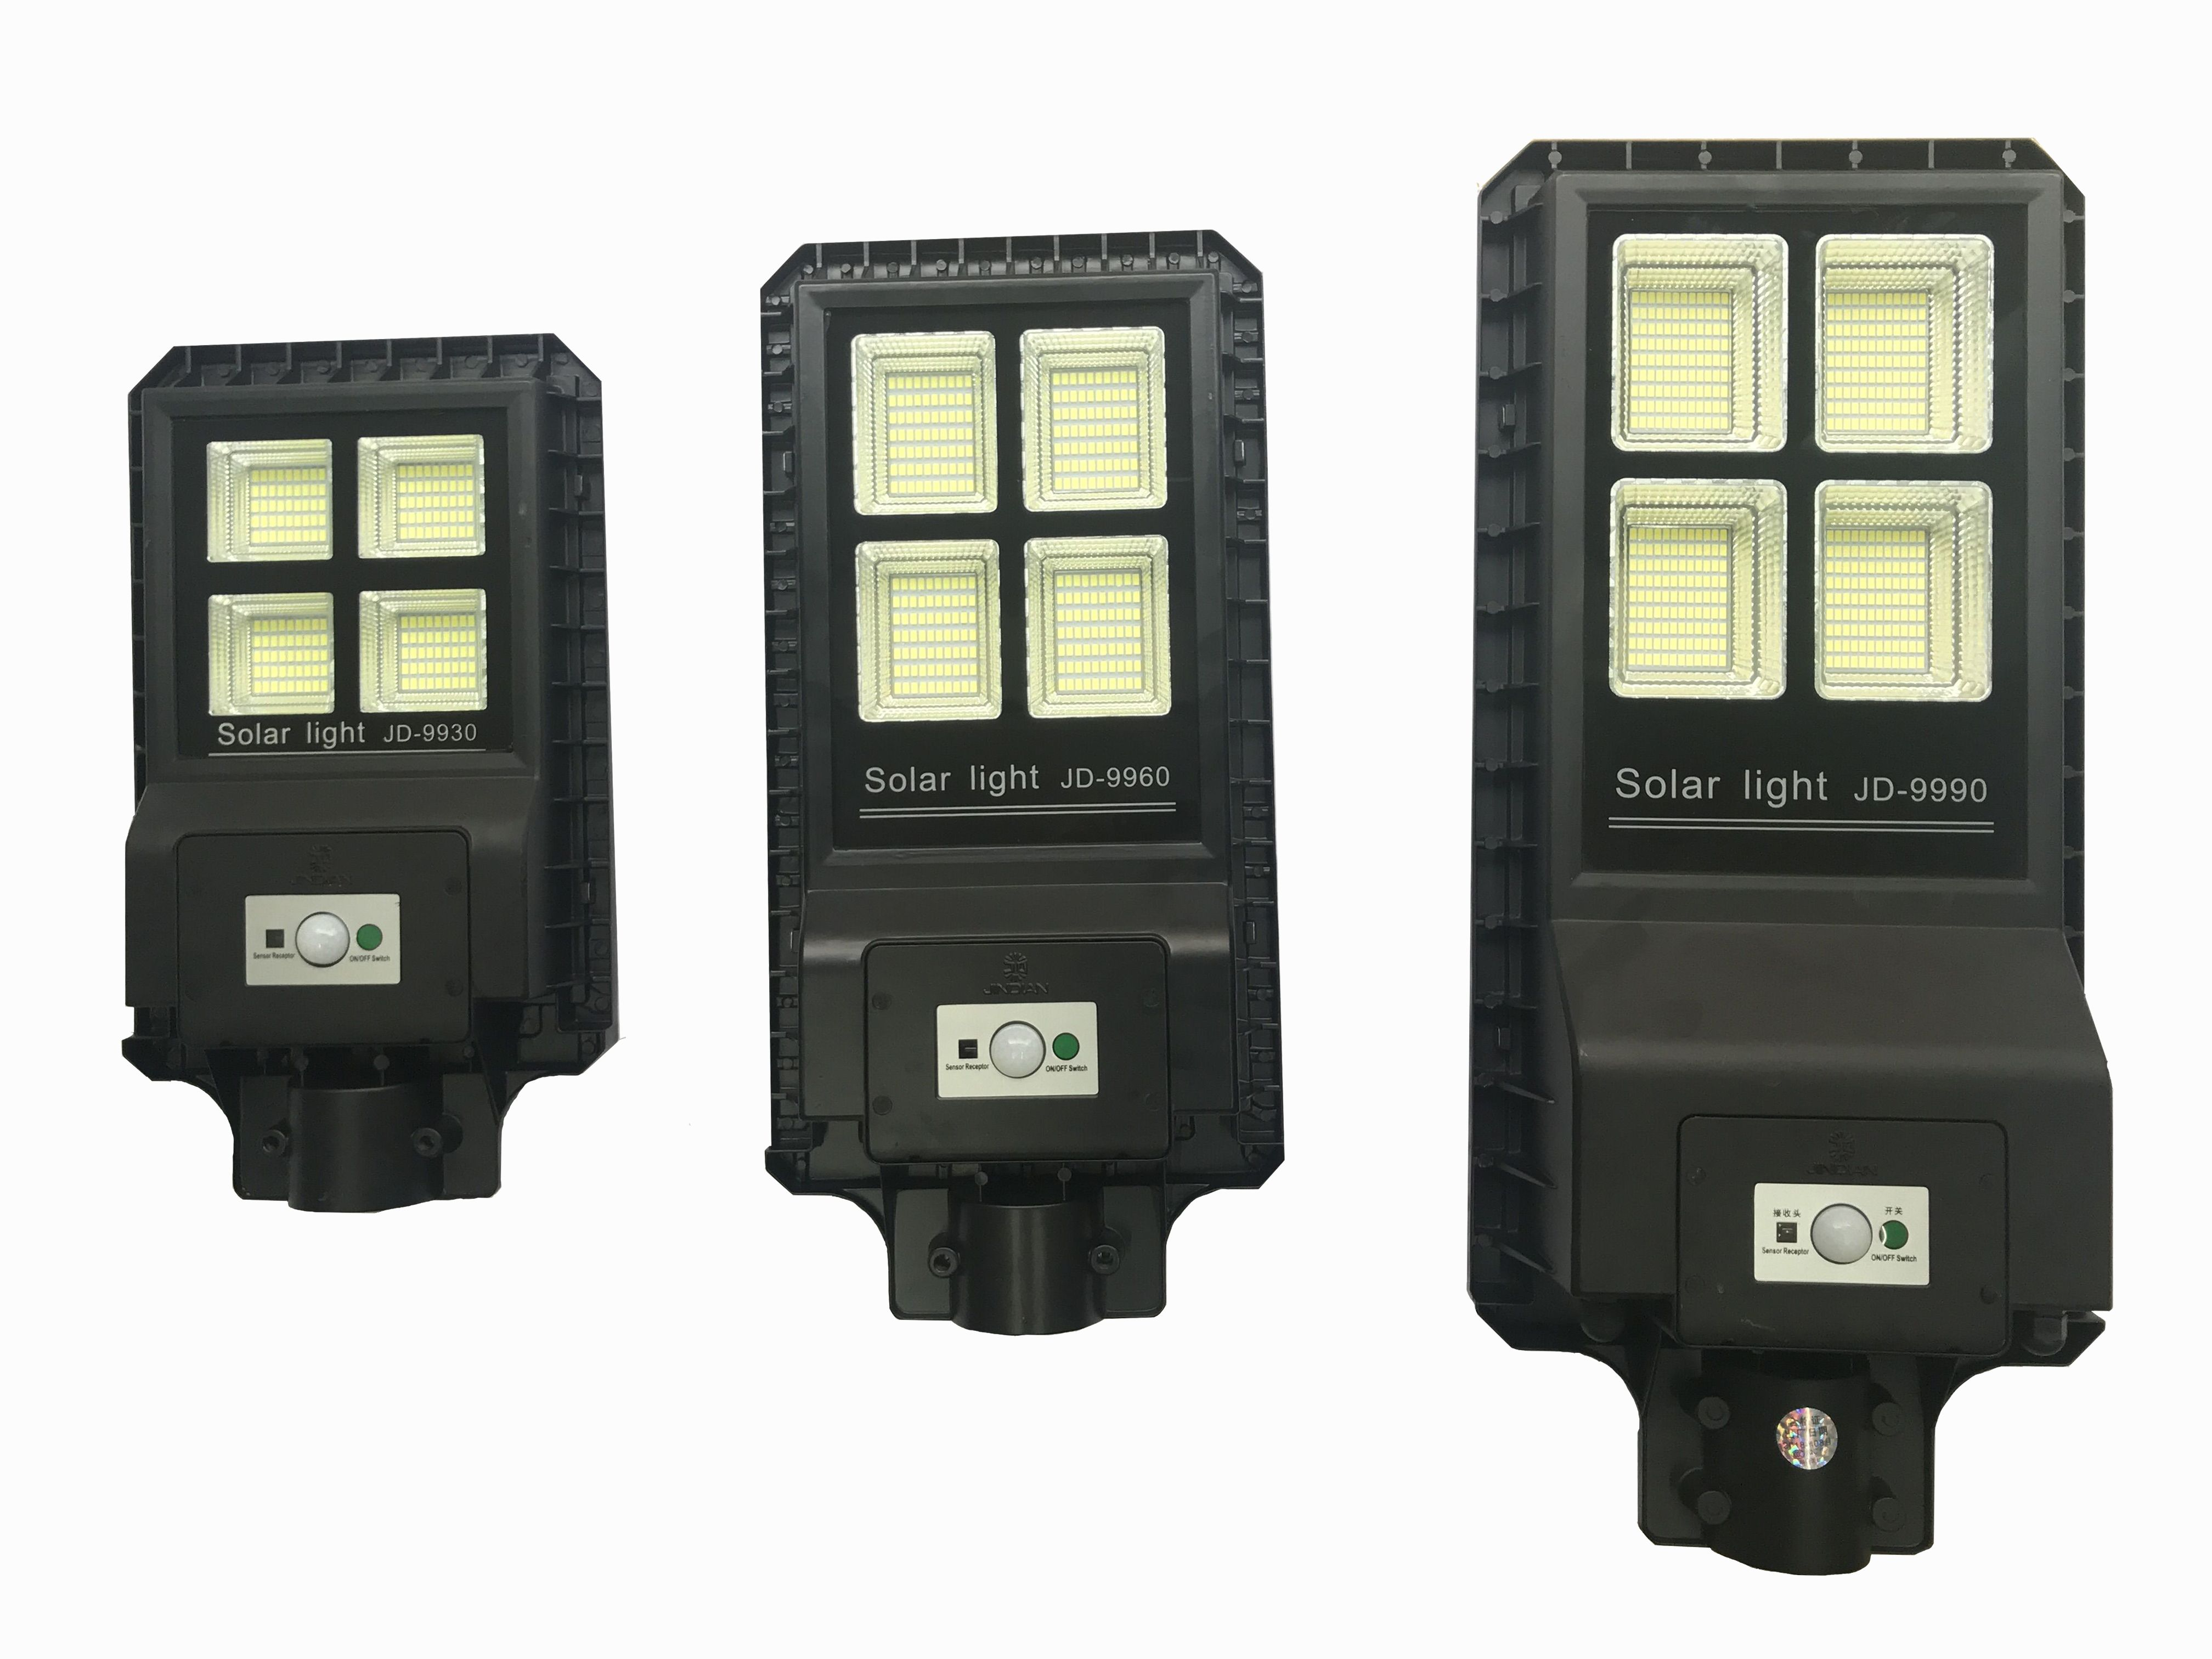 Pin By Love Solar Co Limited On Remote Control All In One Solar Street Light Jd 9930 Jd 9960 Jd 9990 Solar Street Light Street Light Remote Control